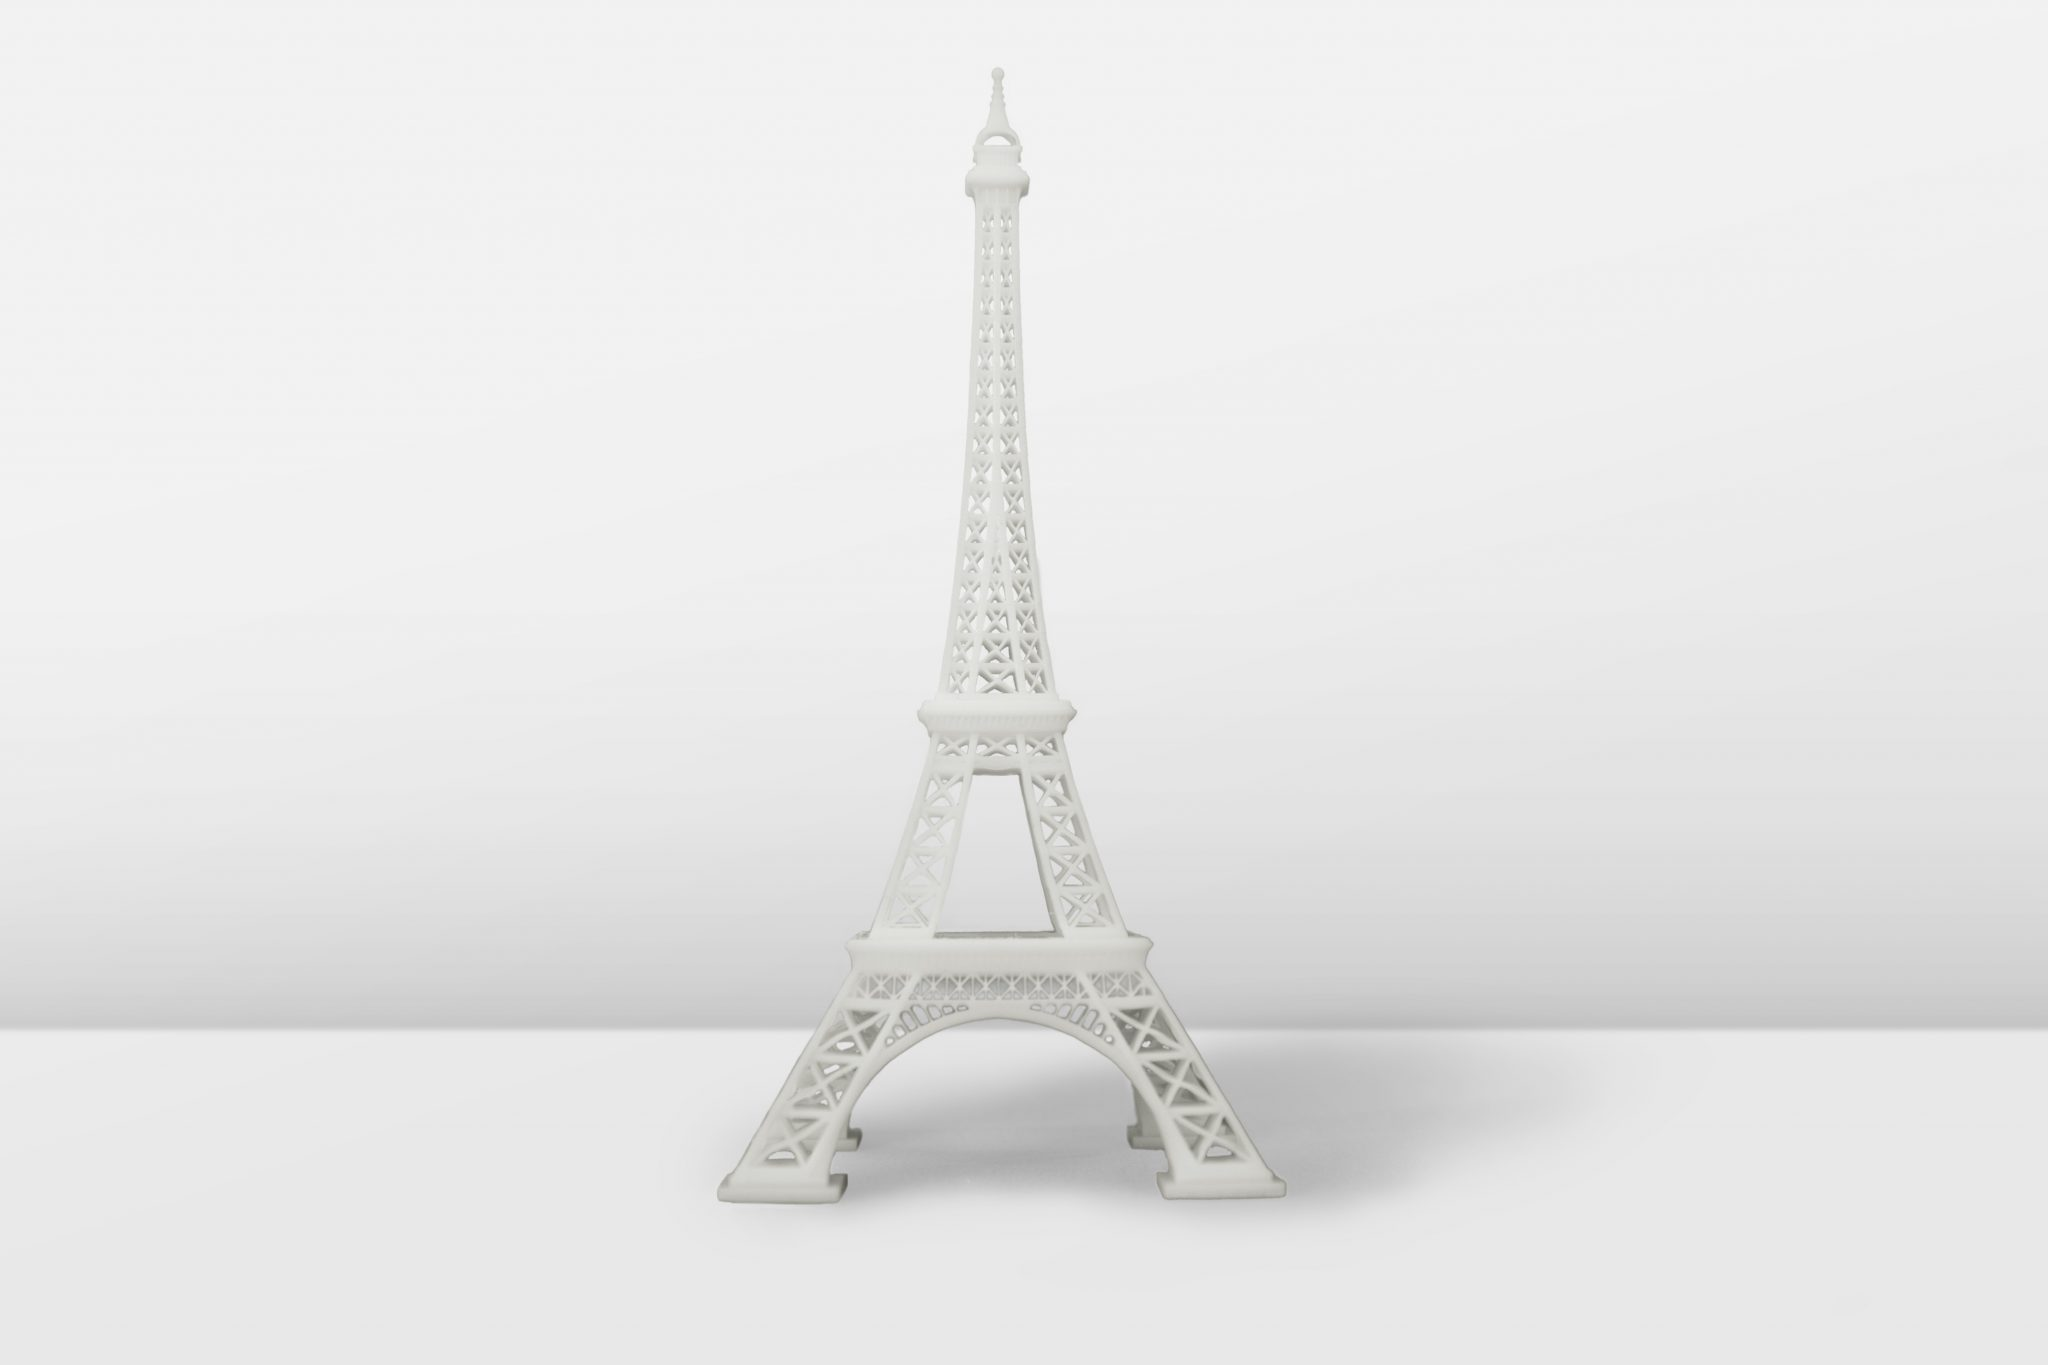 Eiffel Tower model 3D printed on the Inkspire